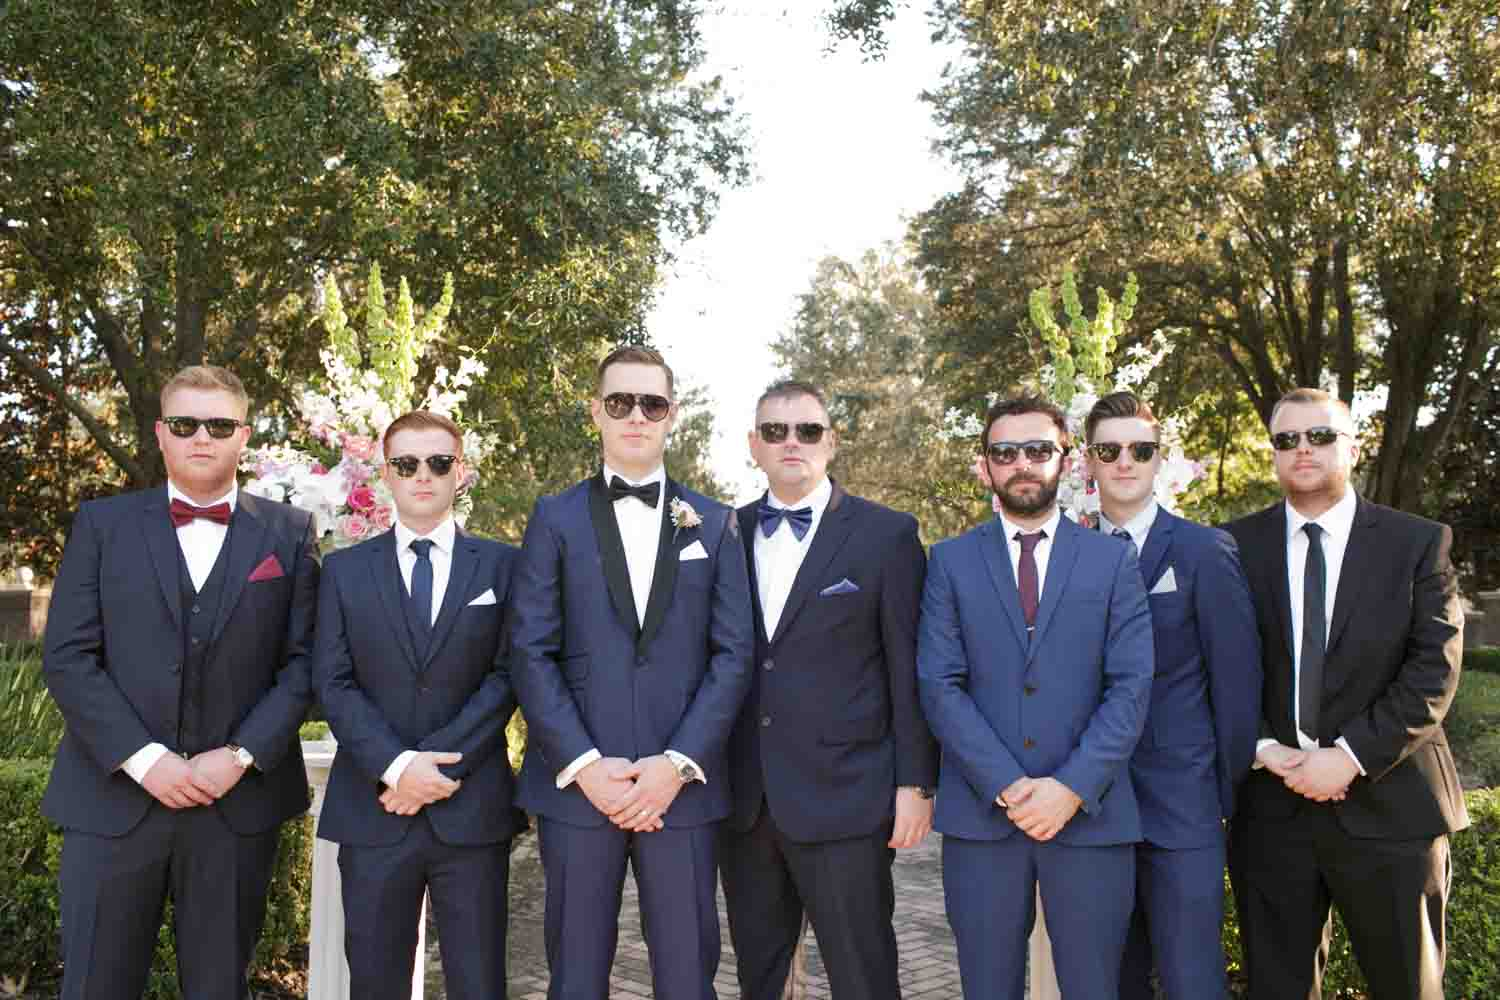 groom and groomsmen in sunglasses and navy suits